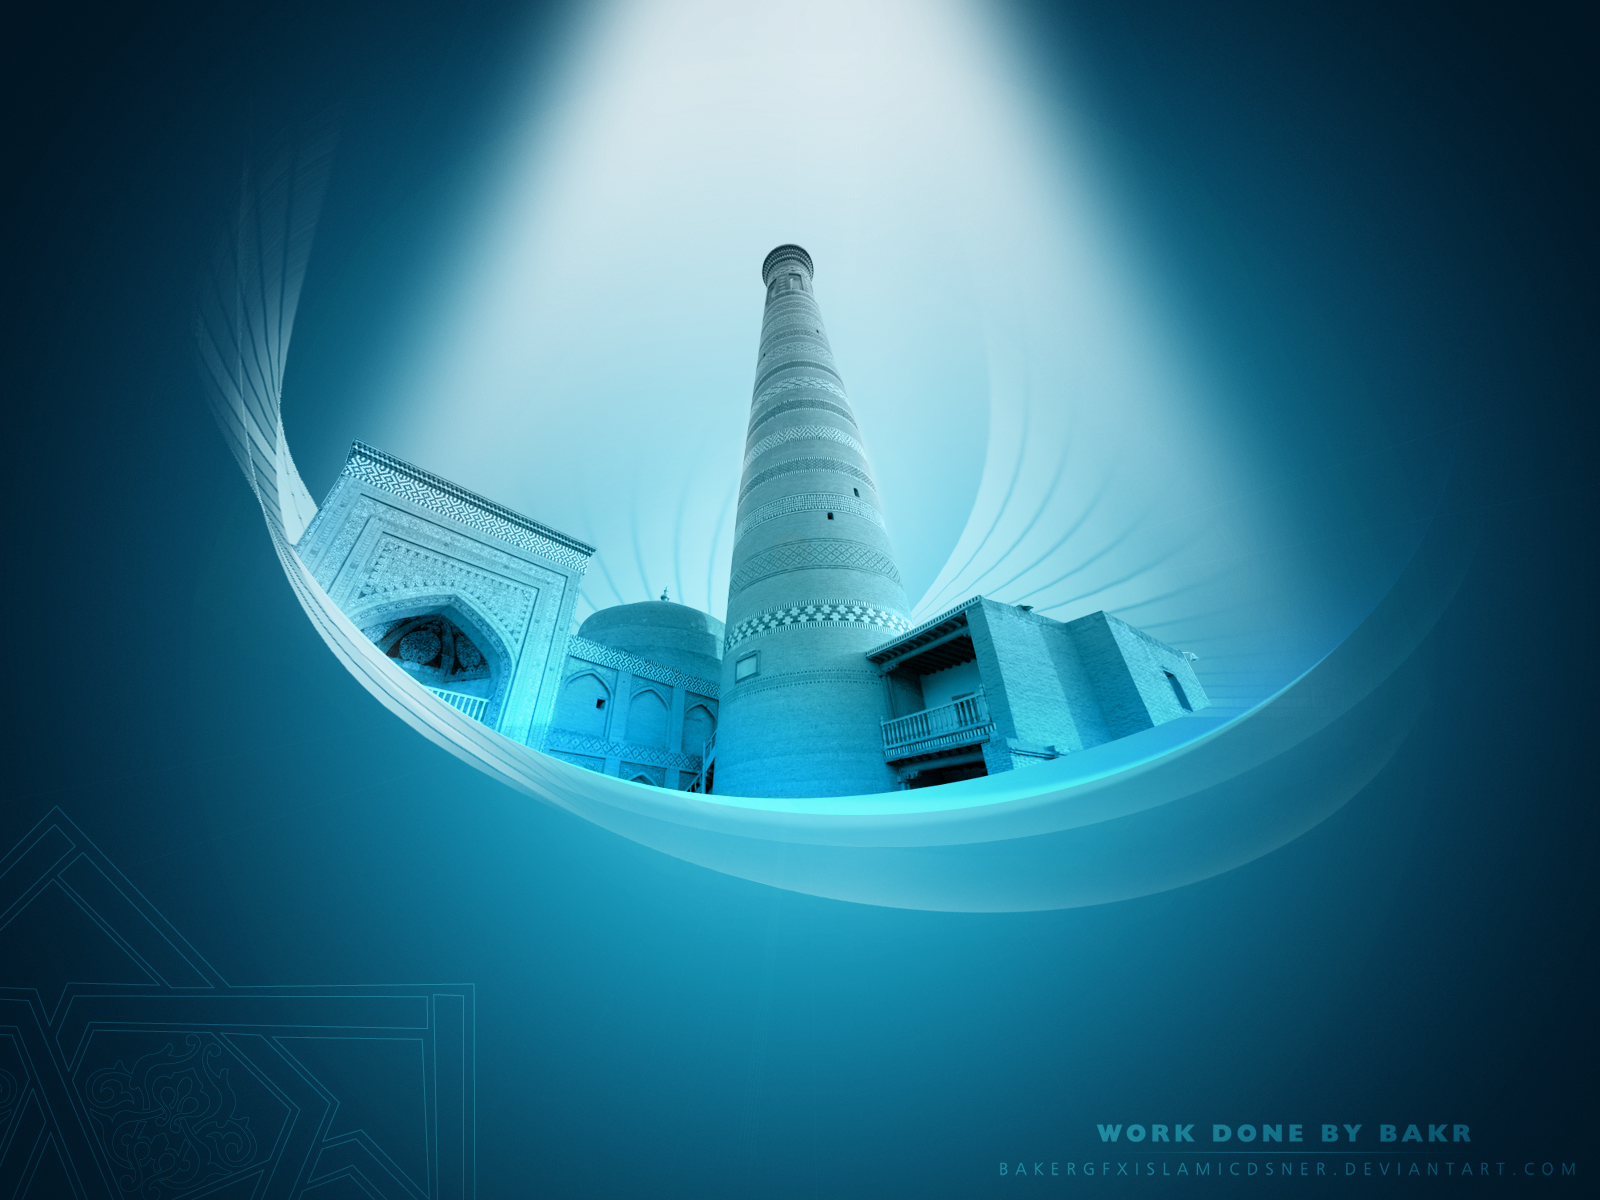 Free Download Muslim Wallpapers, .NYD69